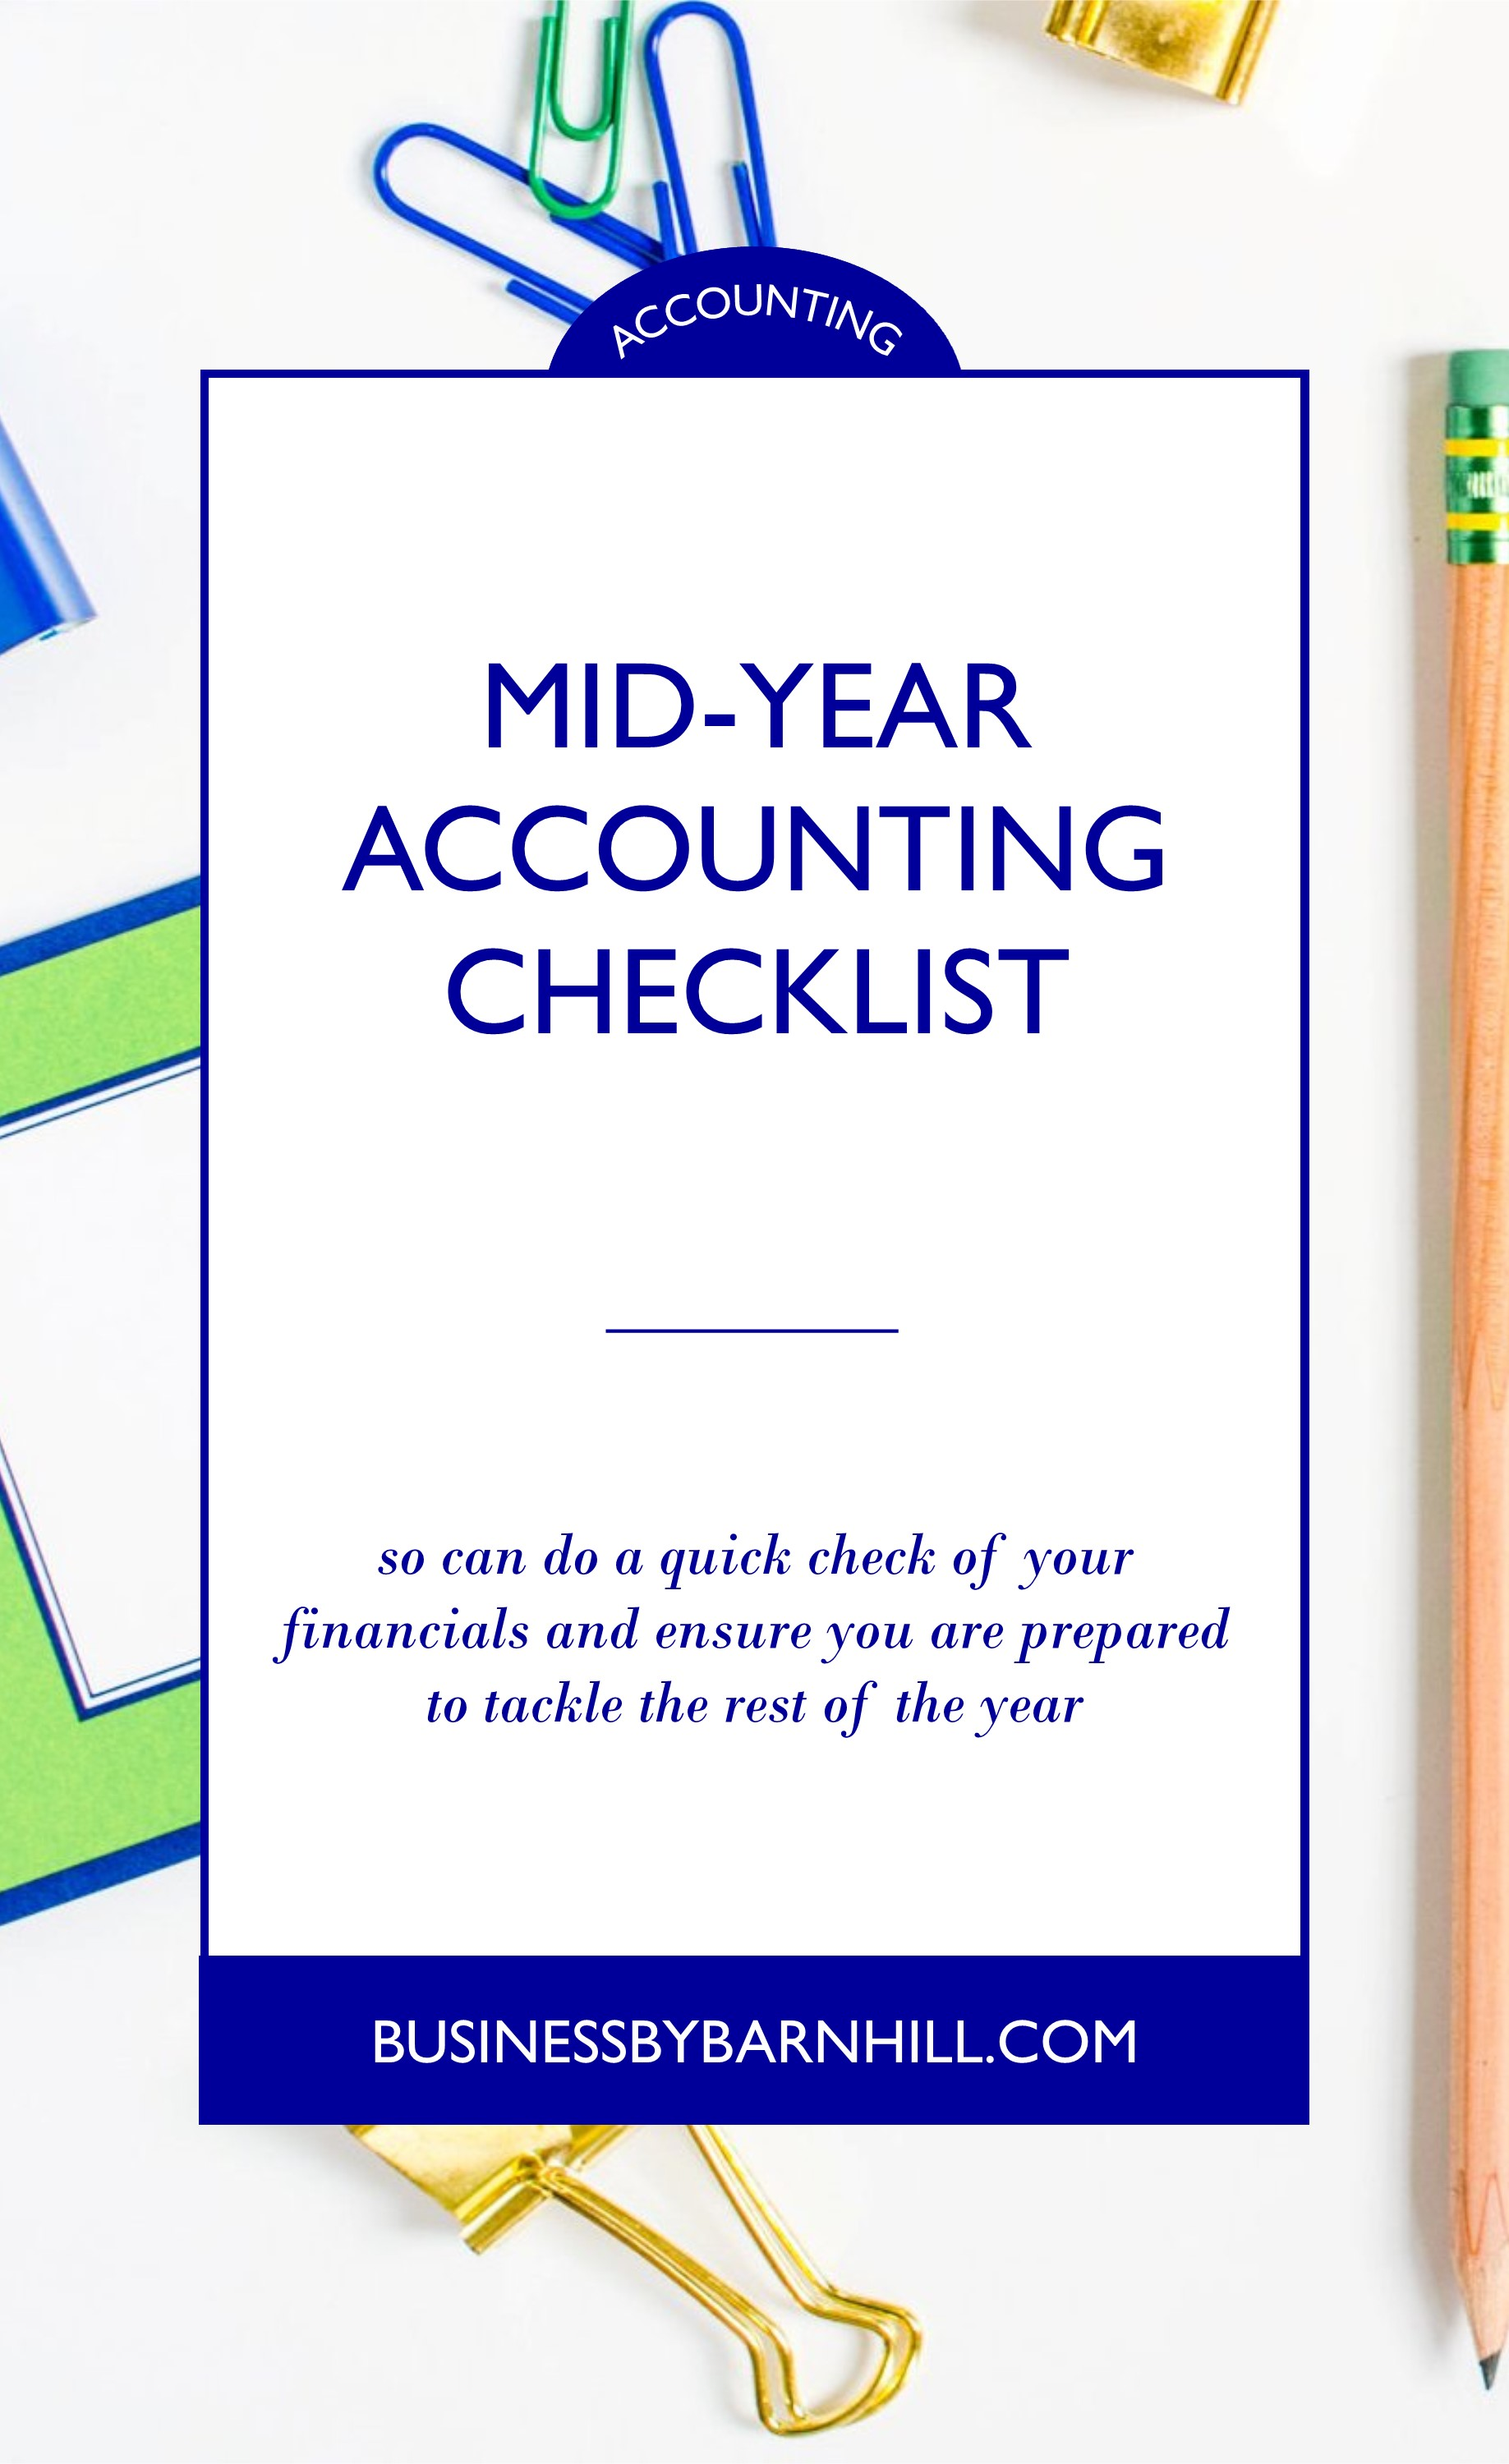 business by barnhill pinterest midyear accounting checklist 1.jpg